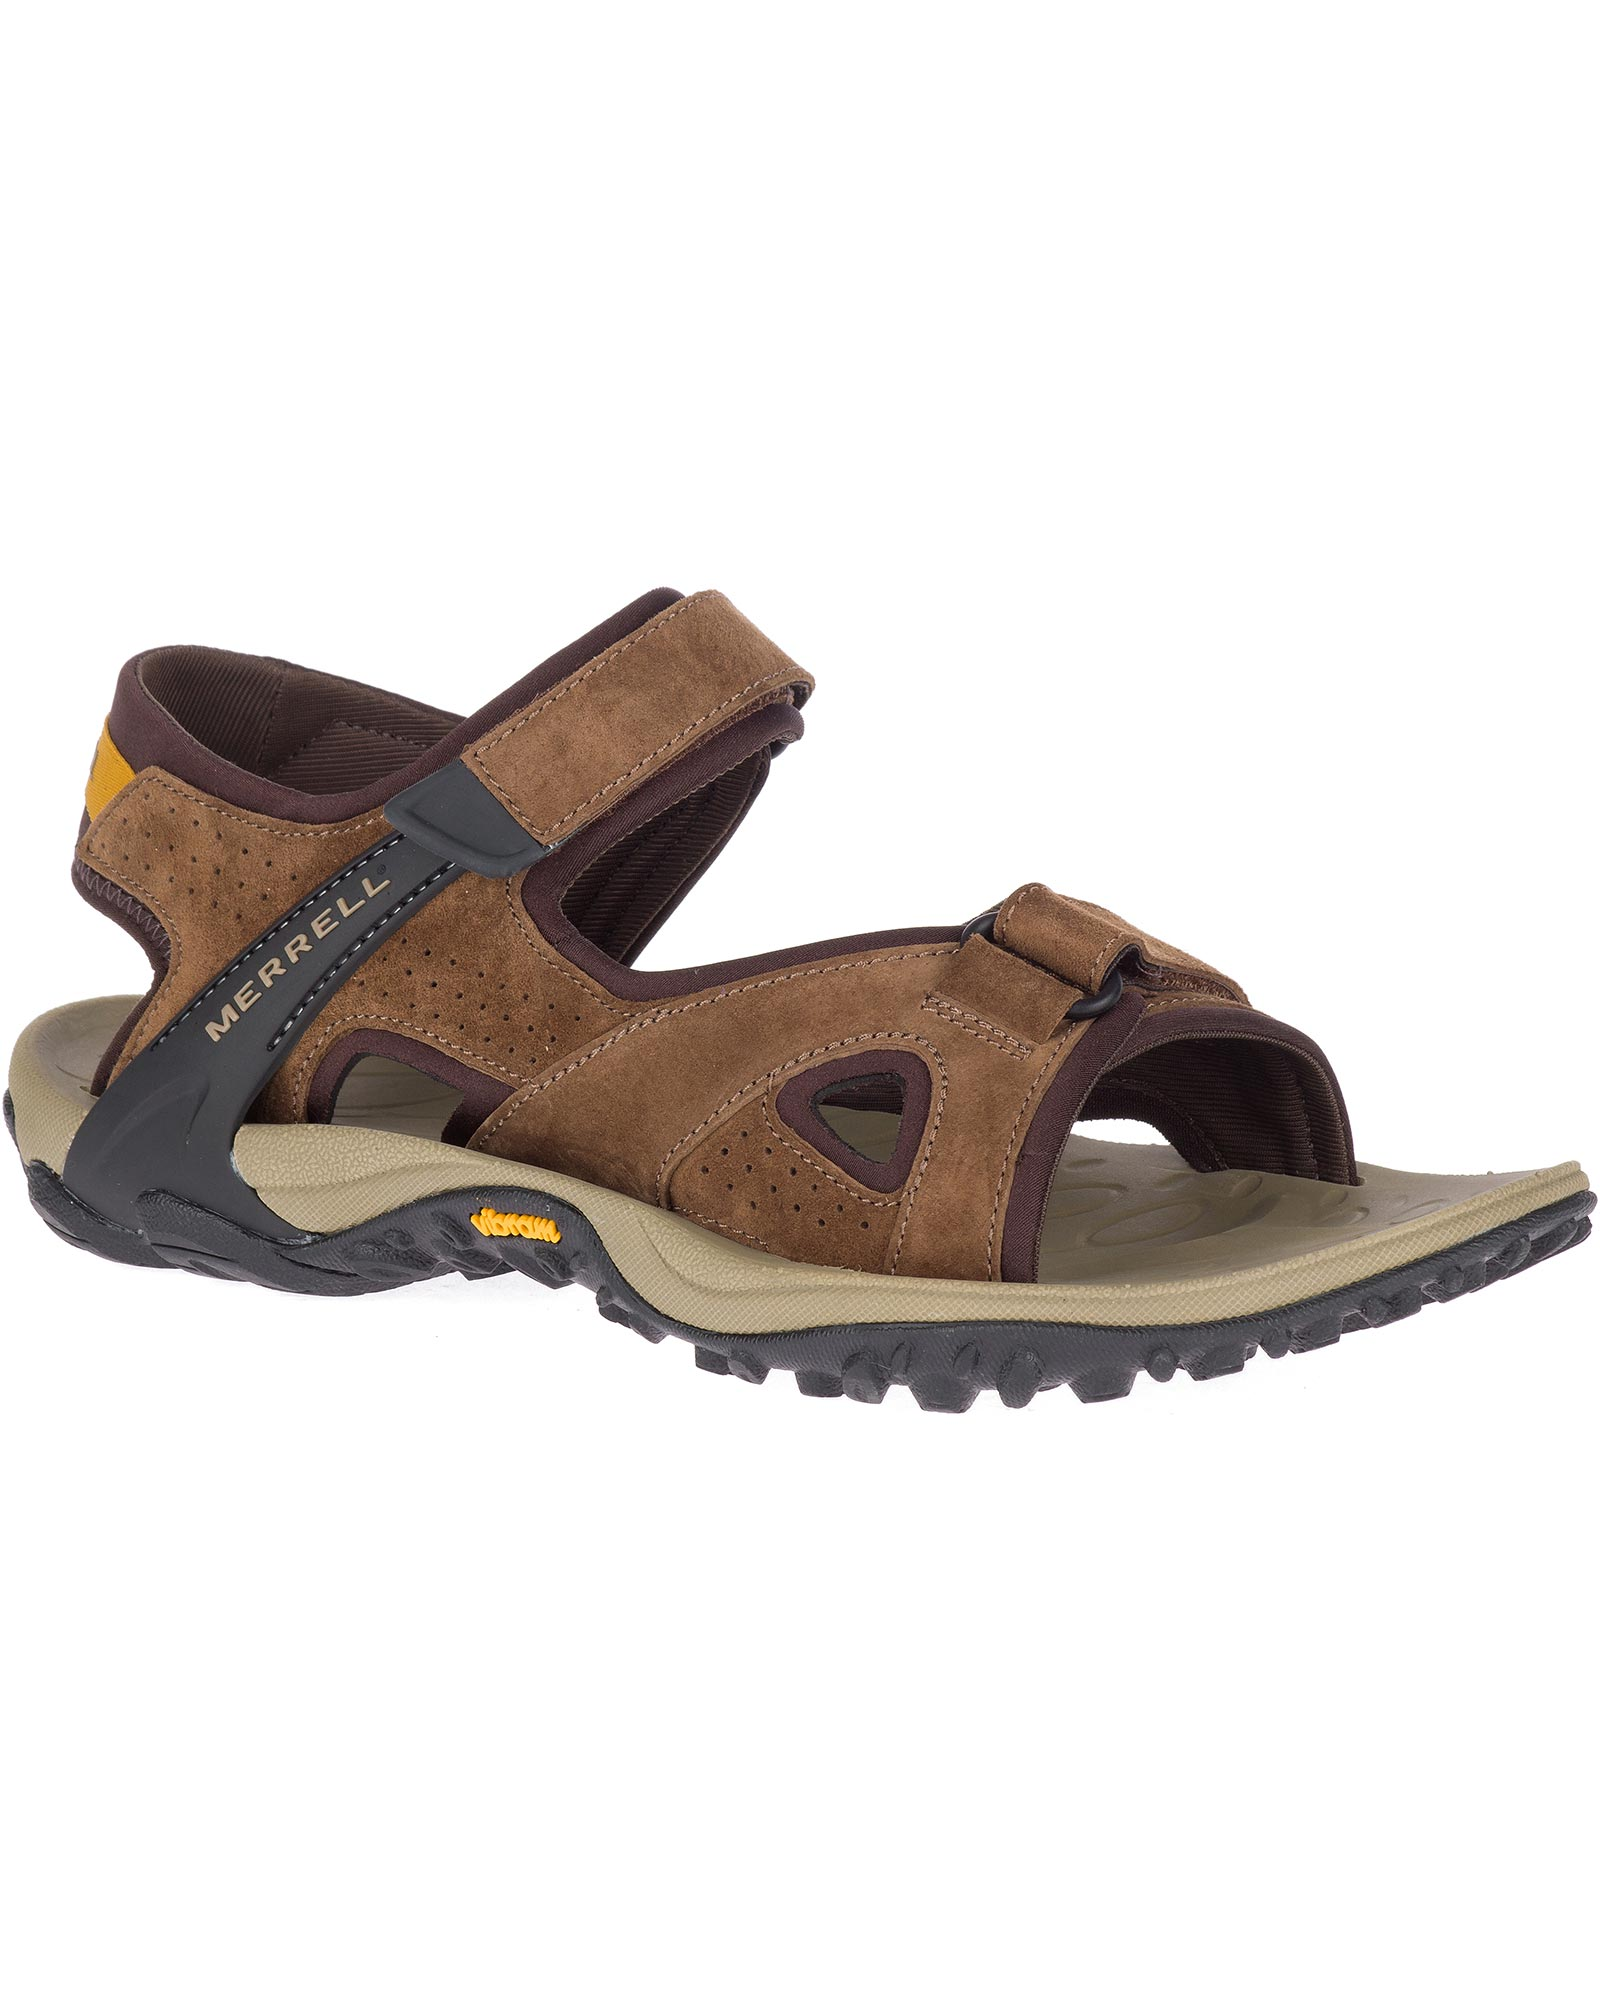 Merrell Men's Kahuna 4 Strap Sandals 0